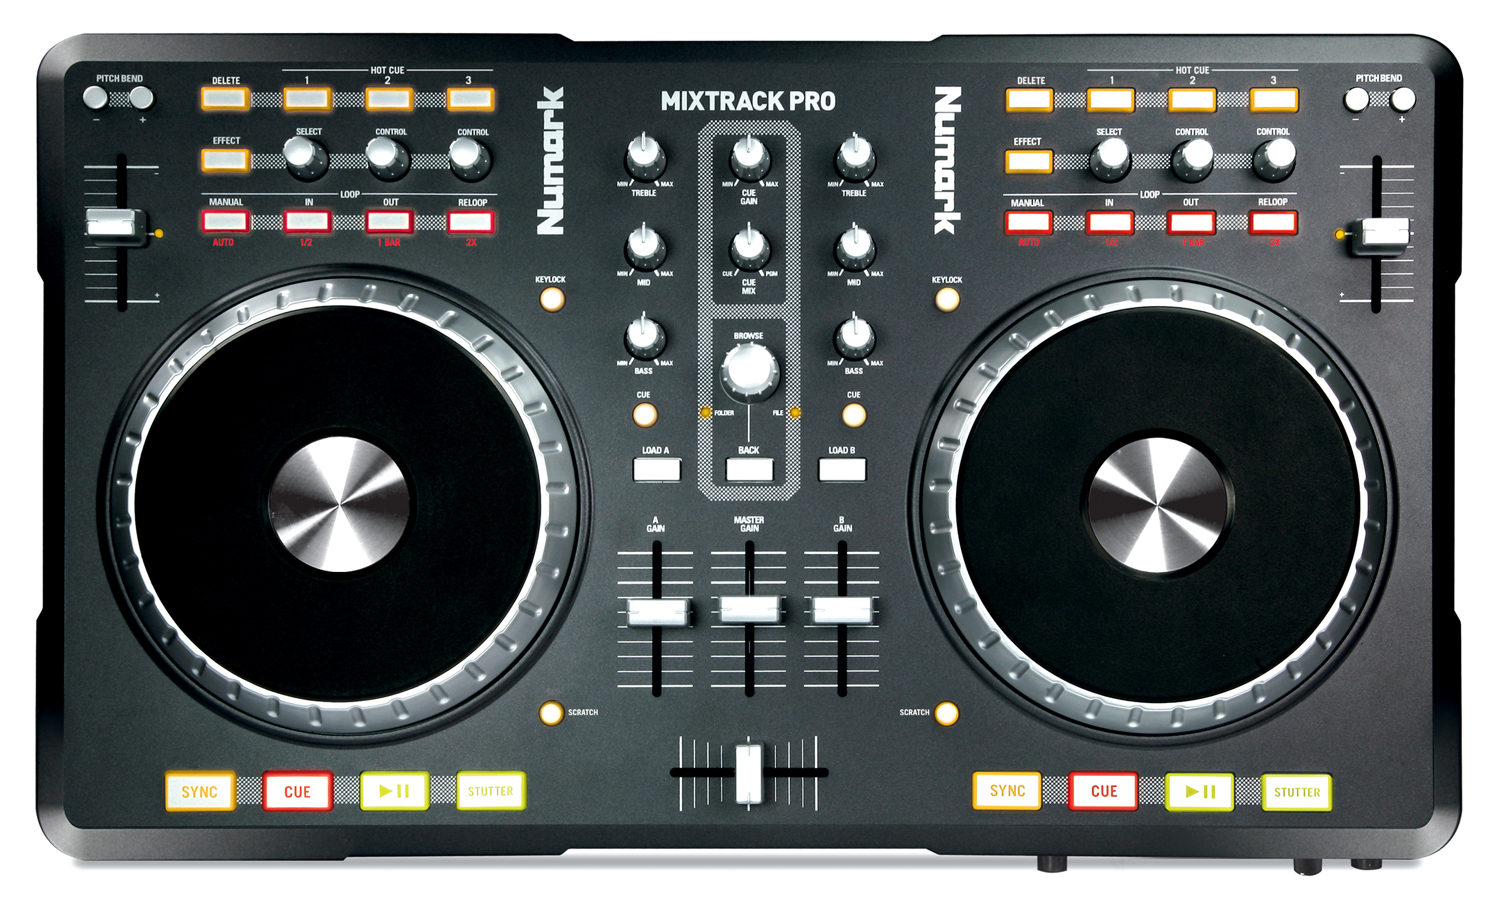 The Mixtrack Pro is a popular controller, and is even sometimes used in clubs - although it's not really intended for this purpose.